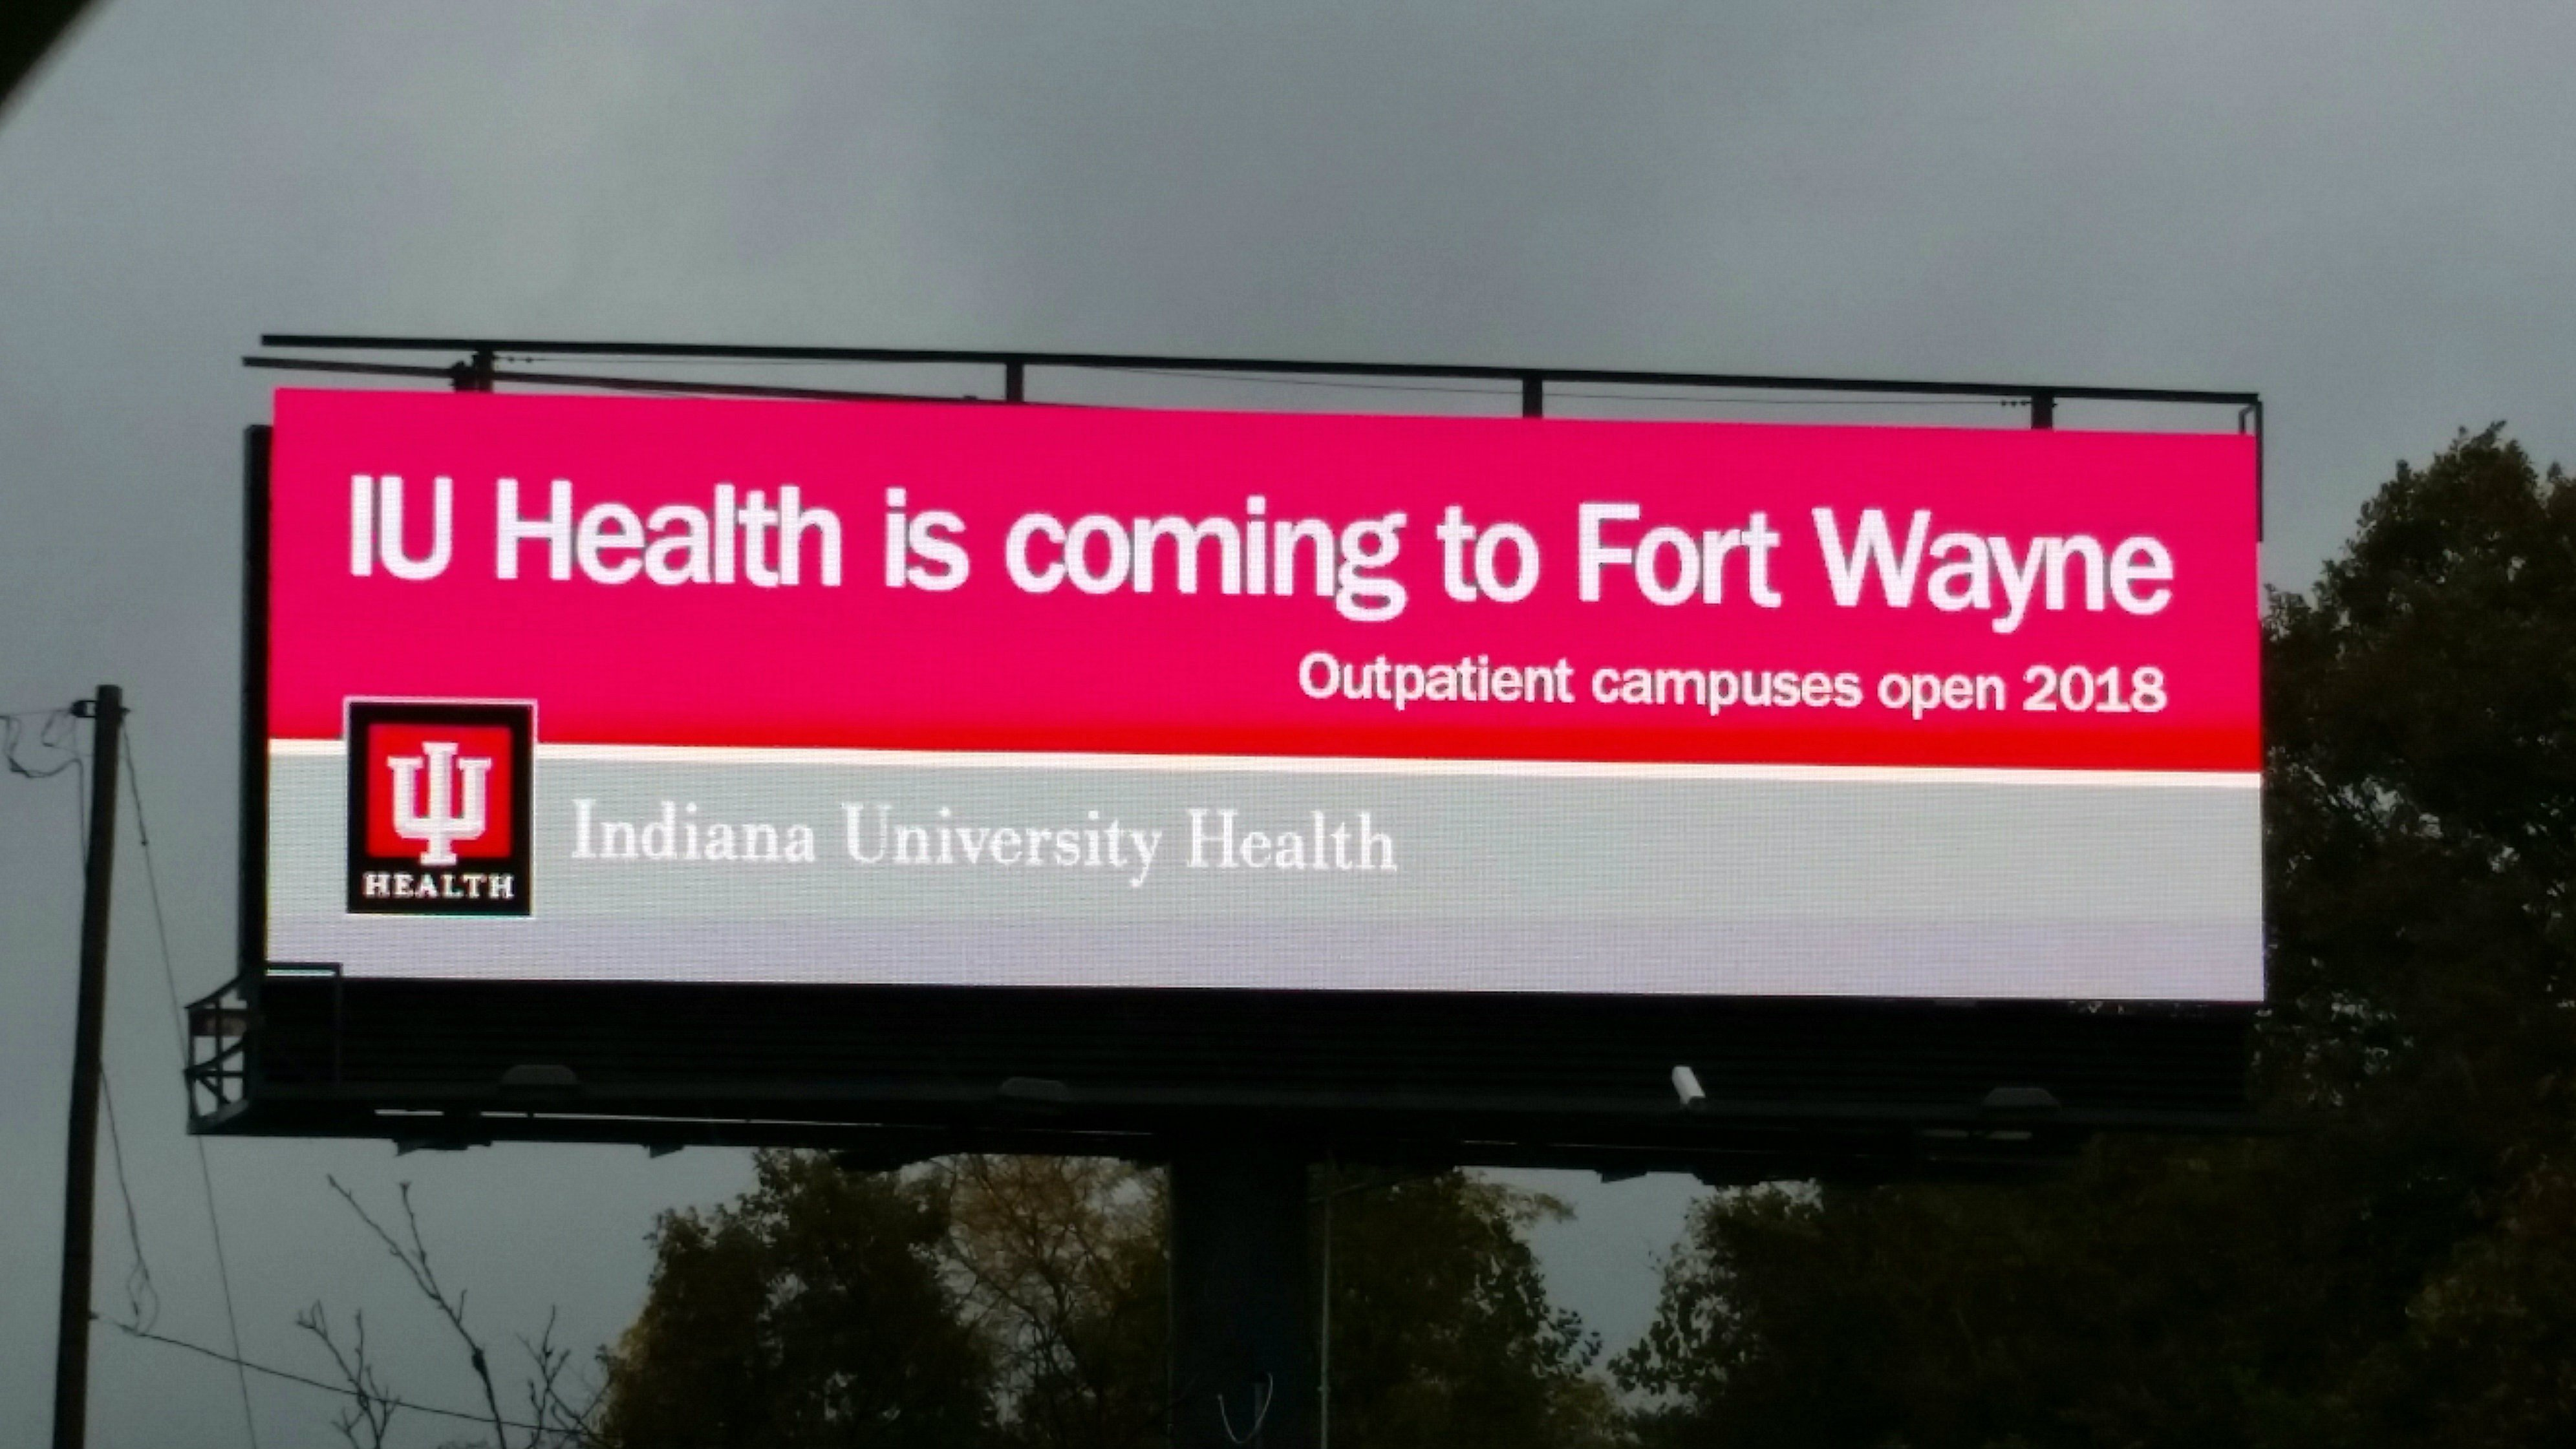 IU Health announces it is ing to Fort Wayne in 2018 Fort